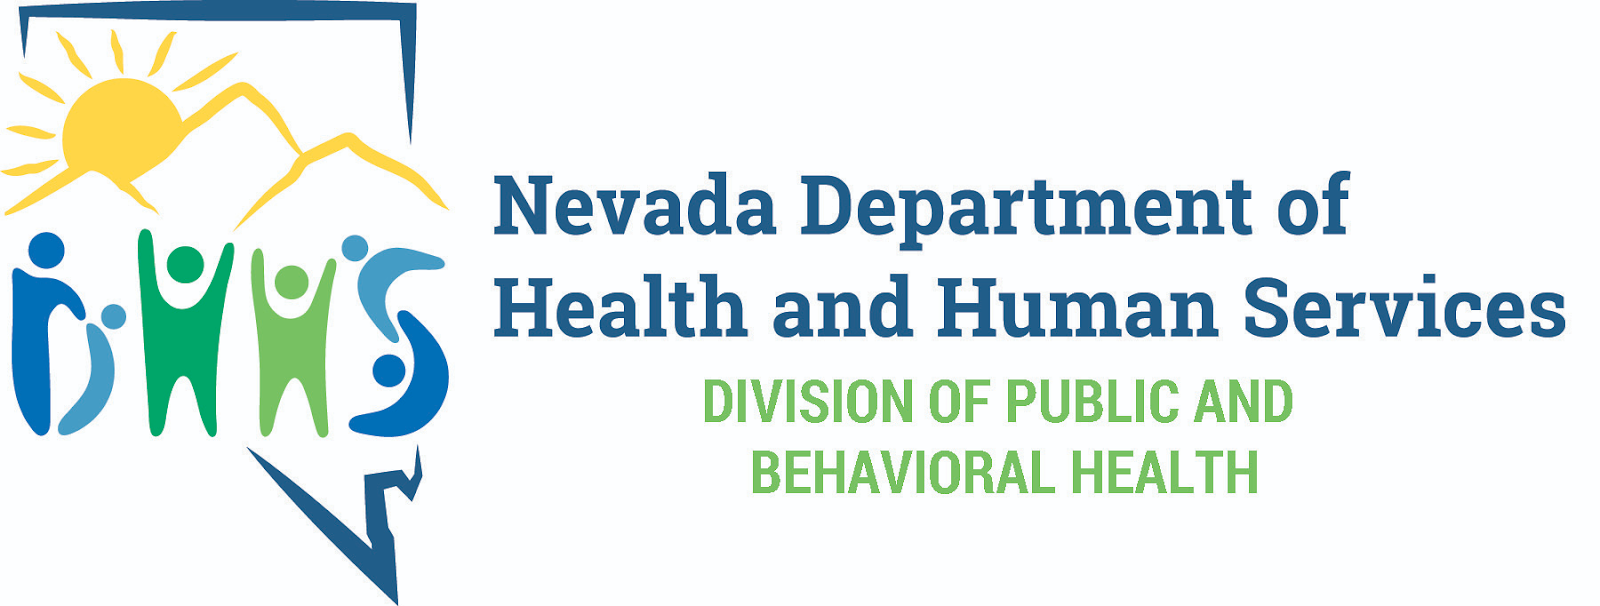 Pity, that Southern nevada adult mental health know site